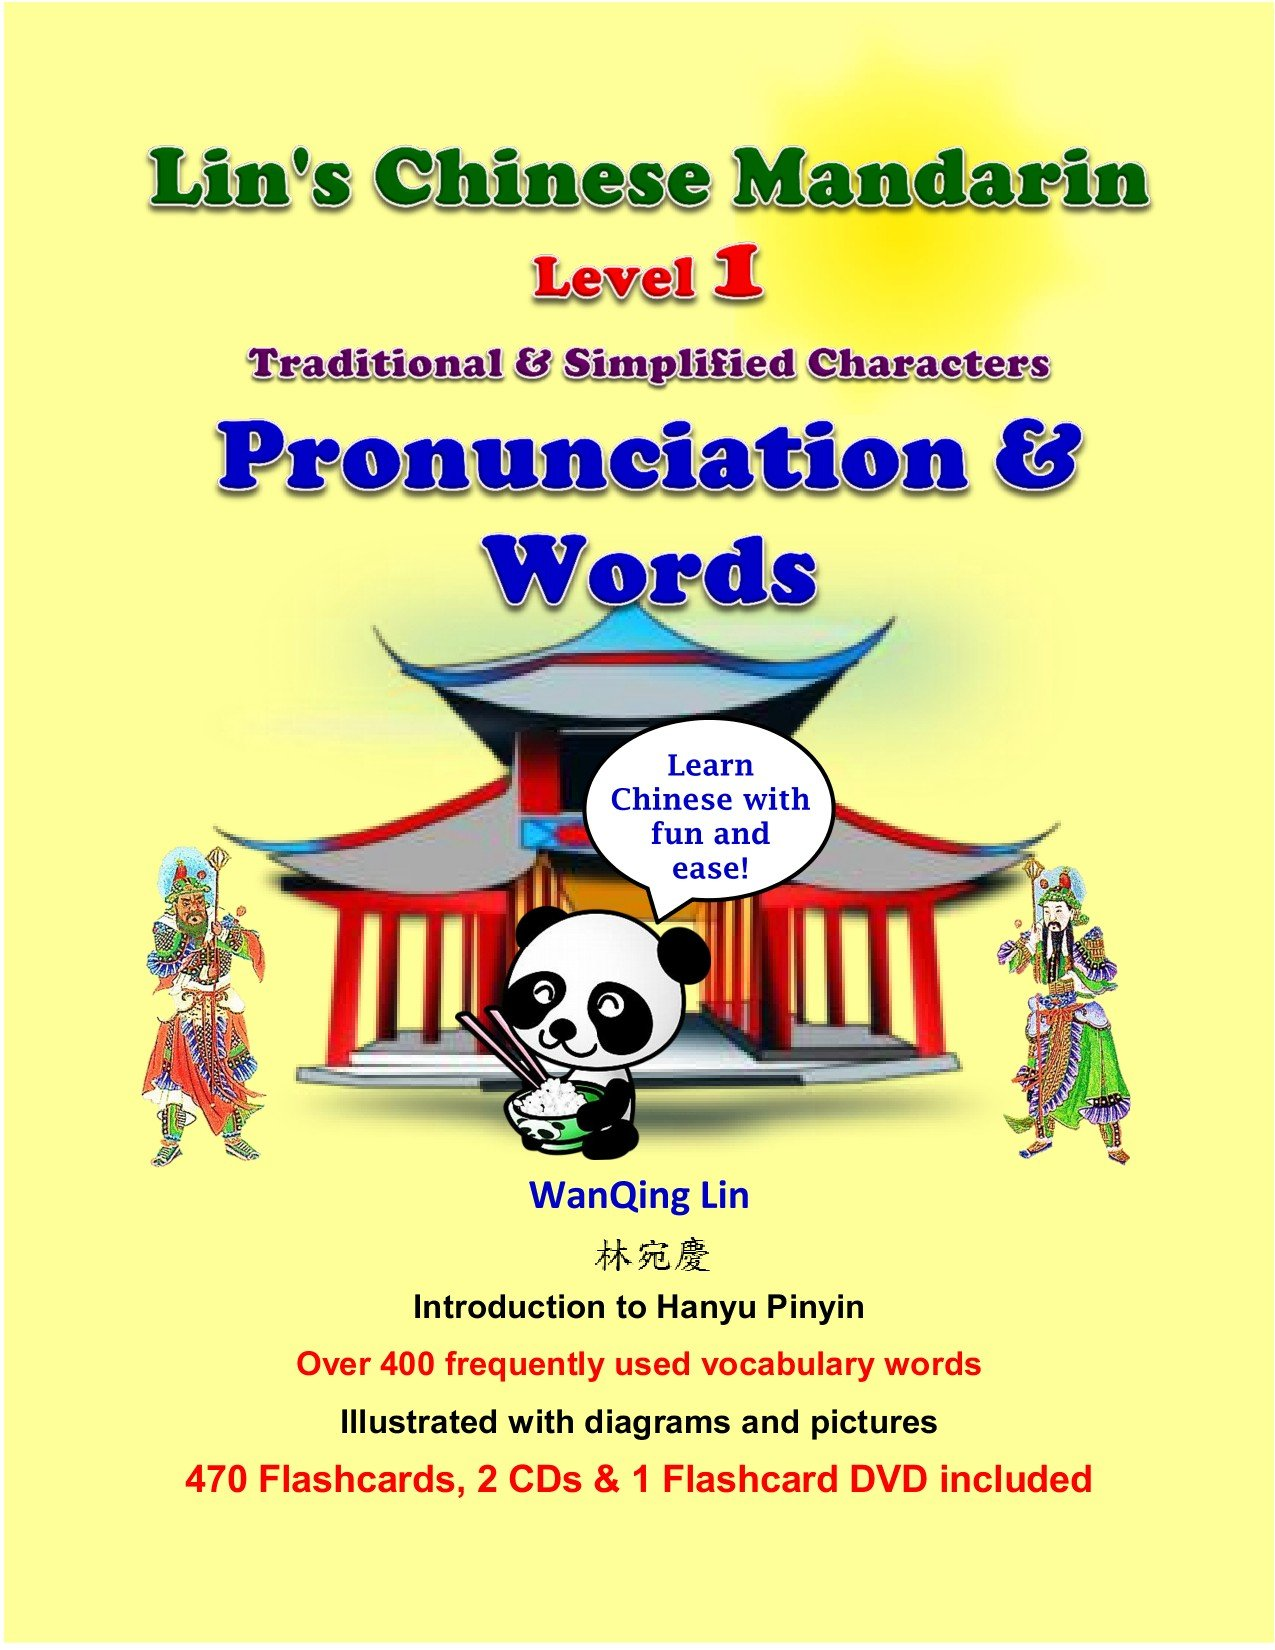 Lin's Chinese Mandarin - Level 1 - Pronunciation & Words -Traditional & Simplified Characters. (English and Chinese Edition) pdf